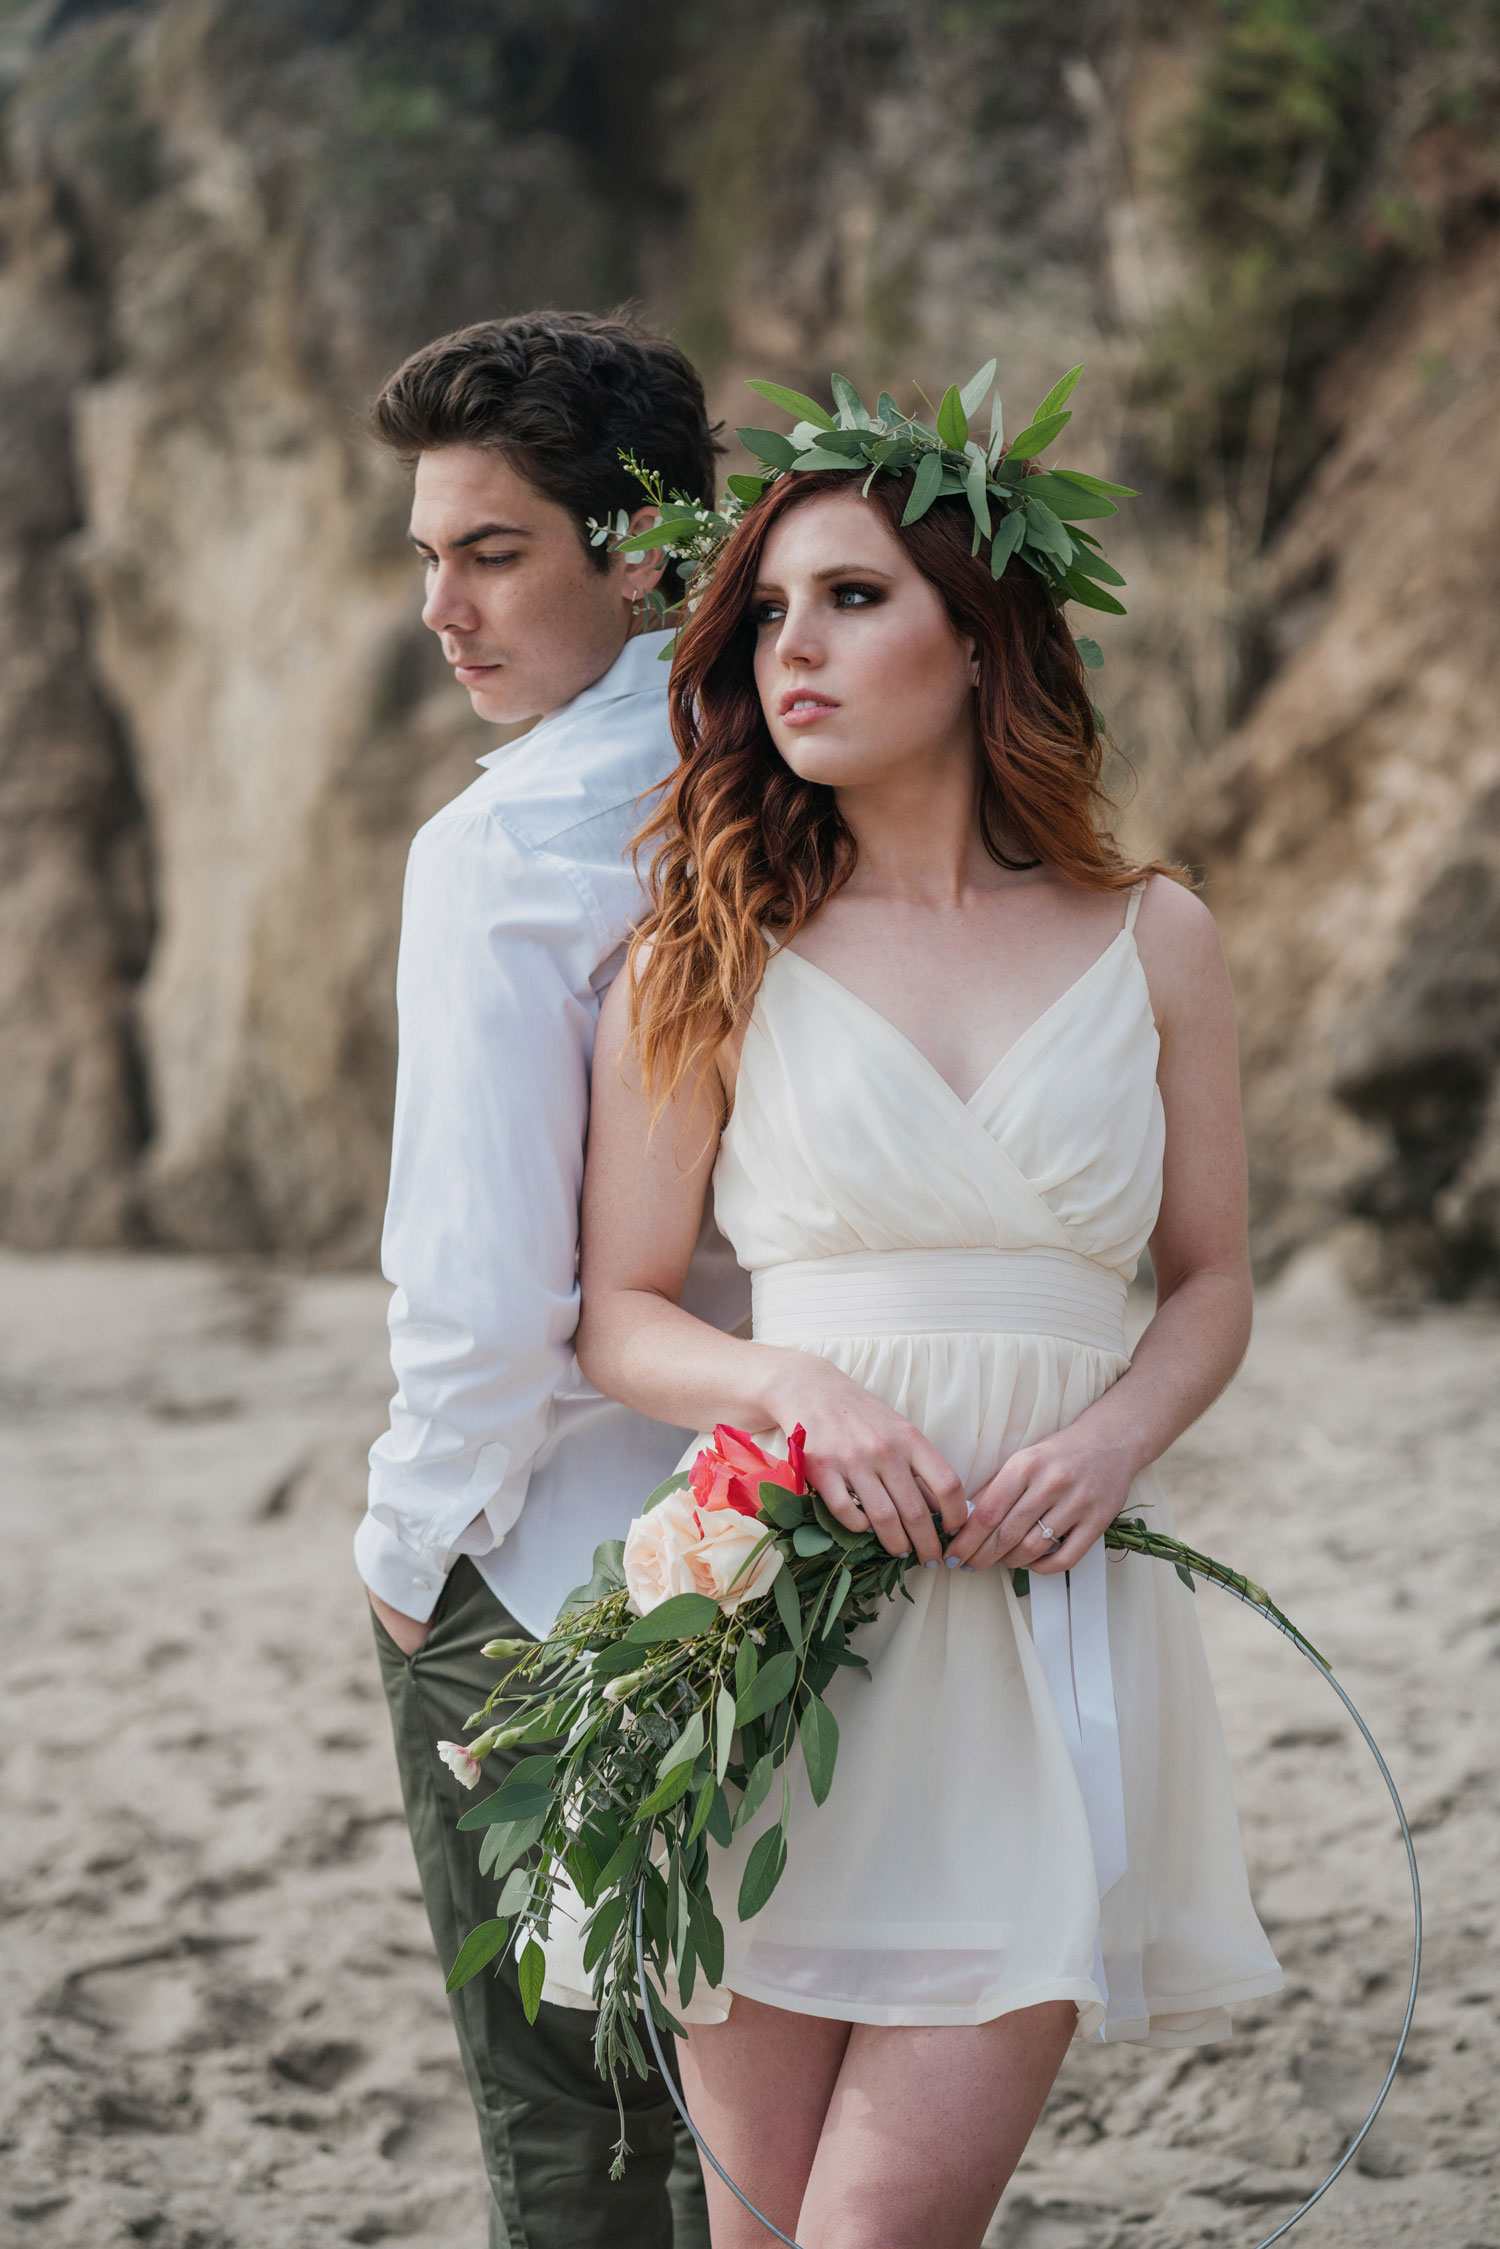 Echosmith Sydney Sierota flower crown white dress and Allstar Weekend Cameron Quiseng engagement shoot